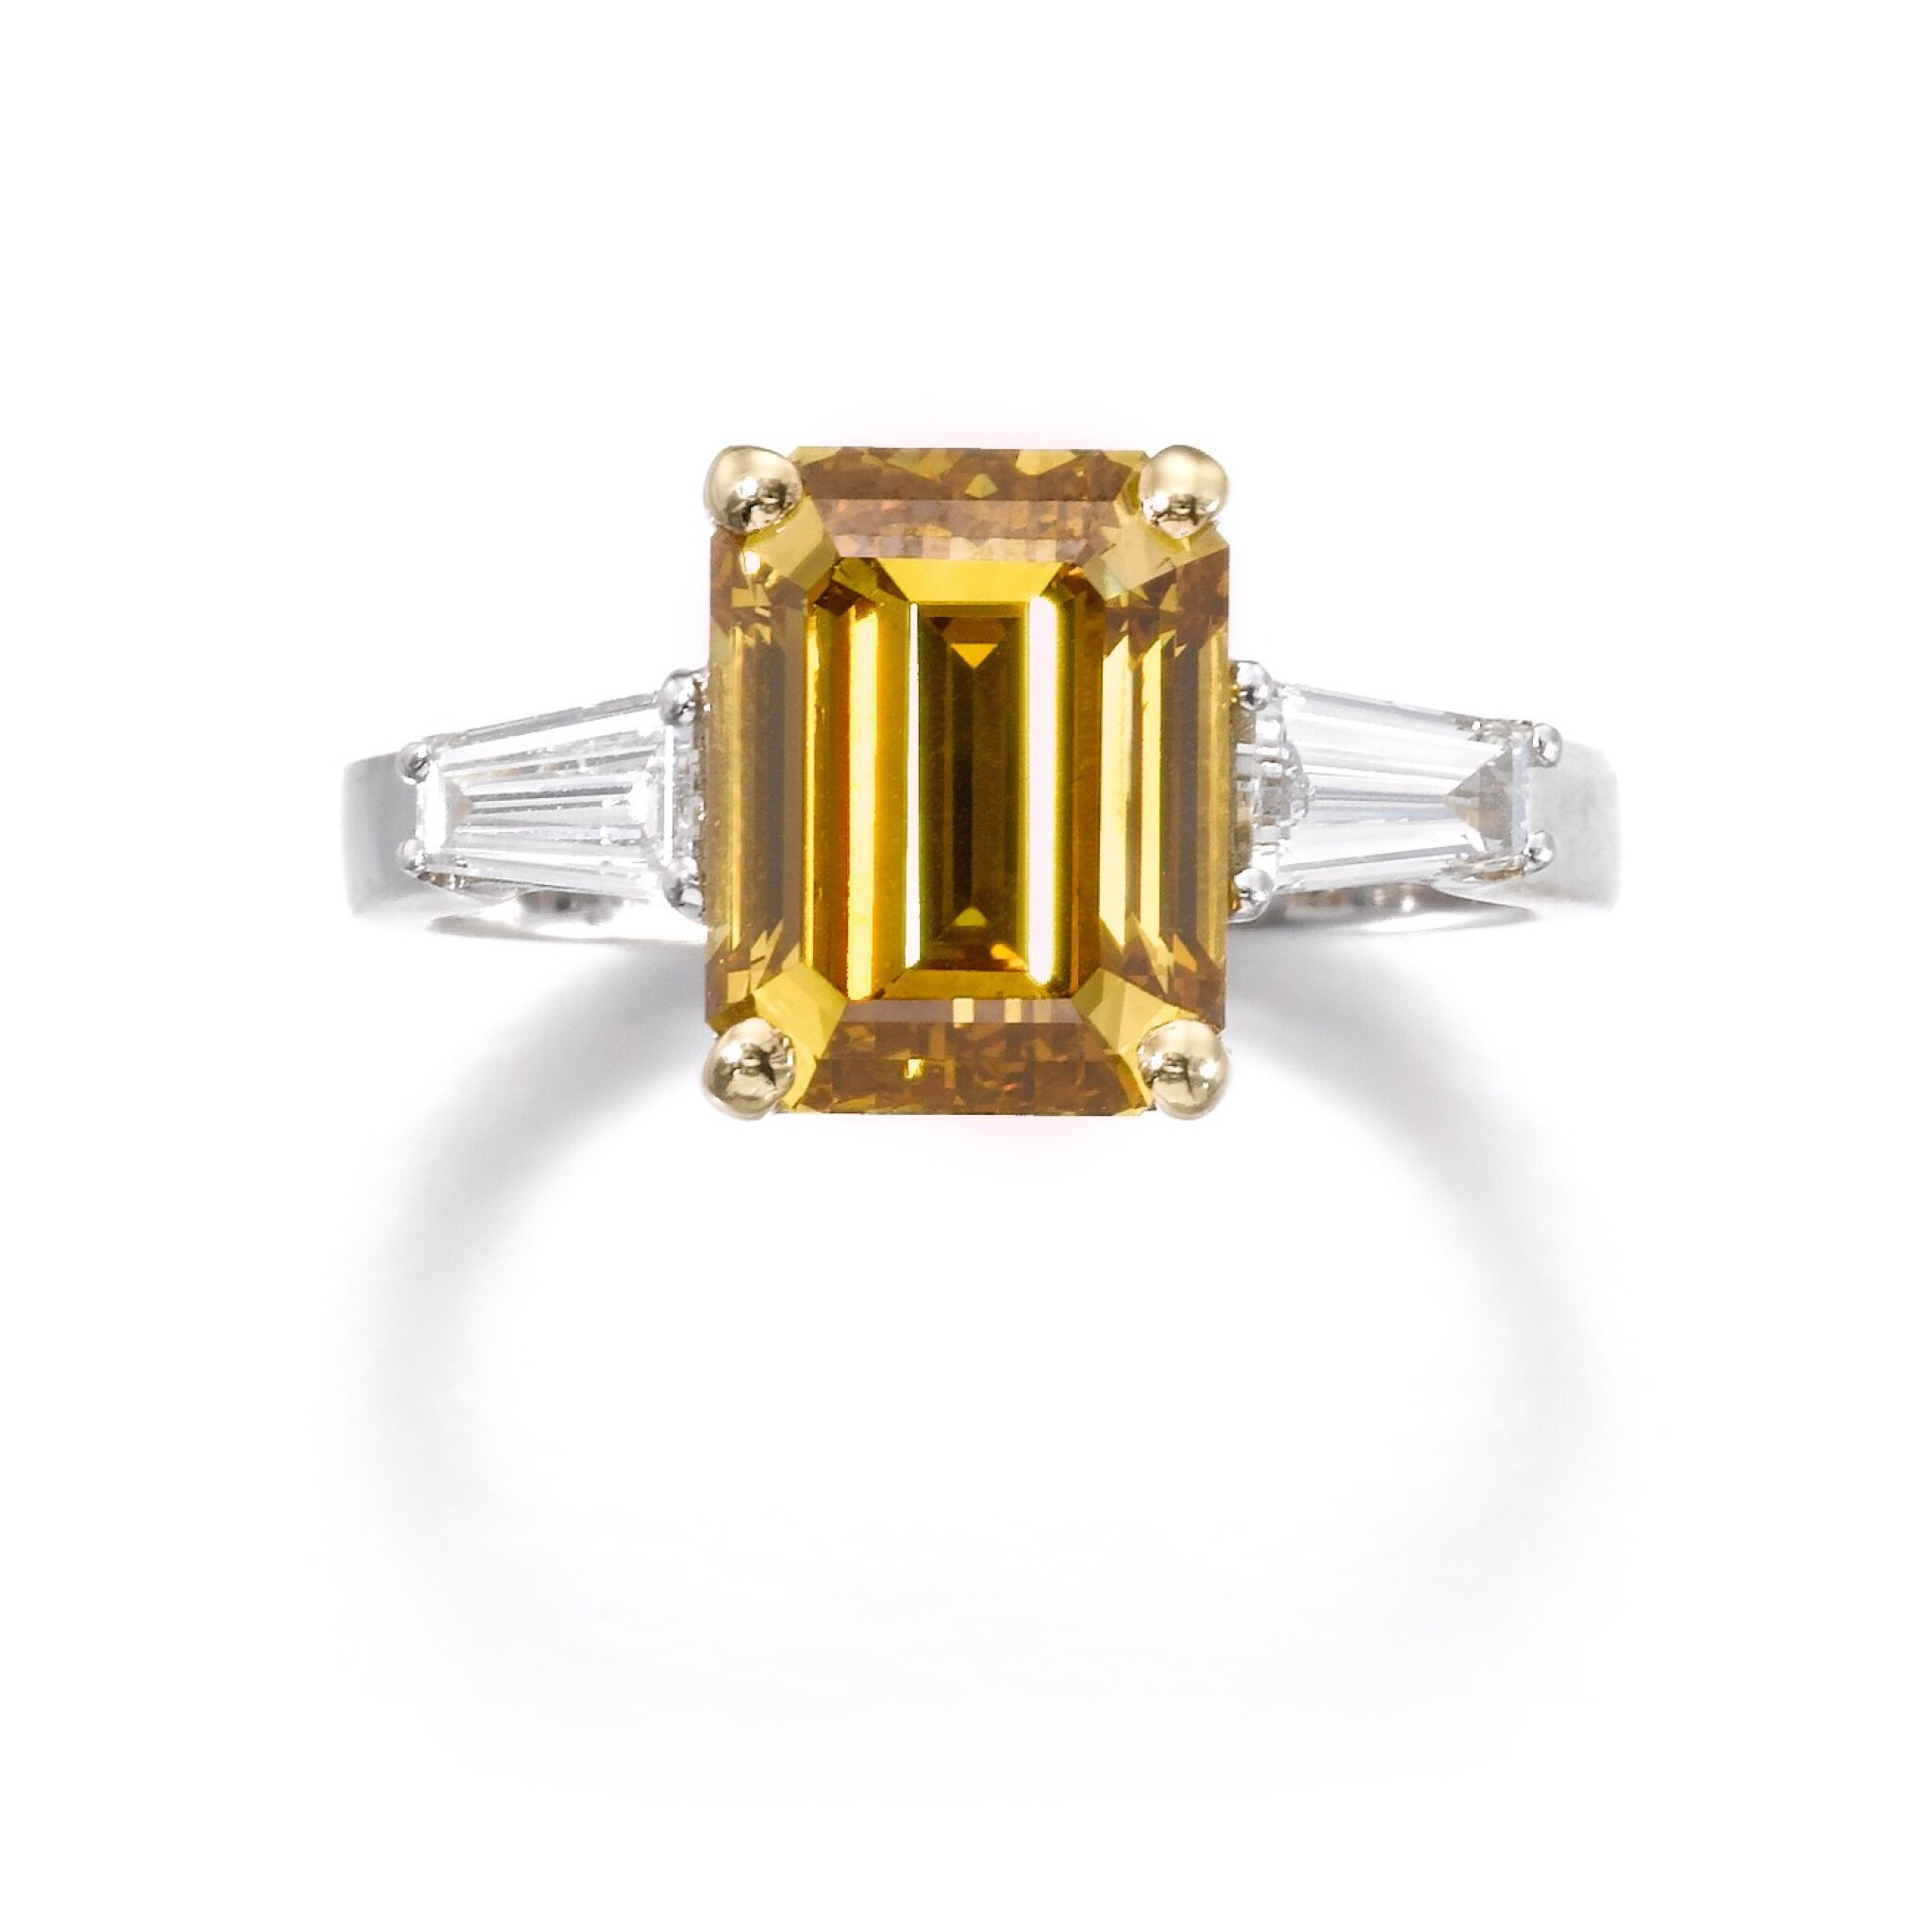 View full screen - View 1 of Lot 644. Fancy Deep Brownish Orangy Yellow diamond ring | 深彩棕橙黃色鑽石戒指.